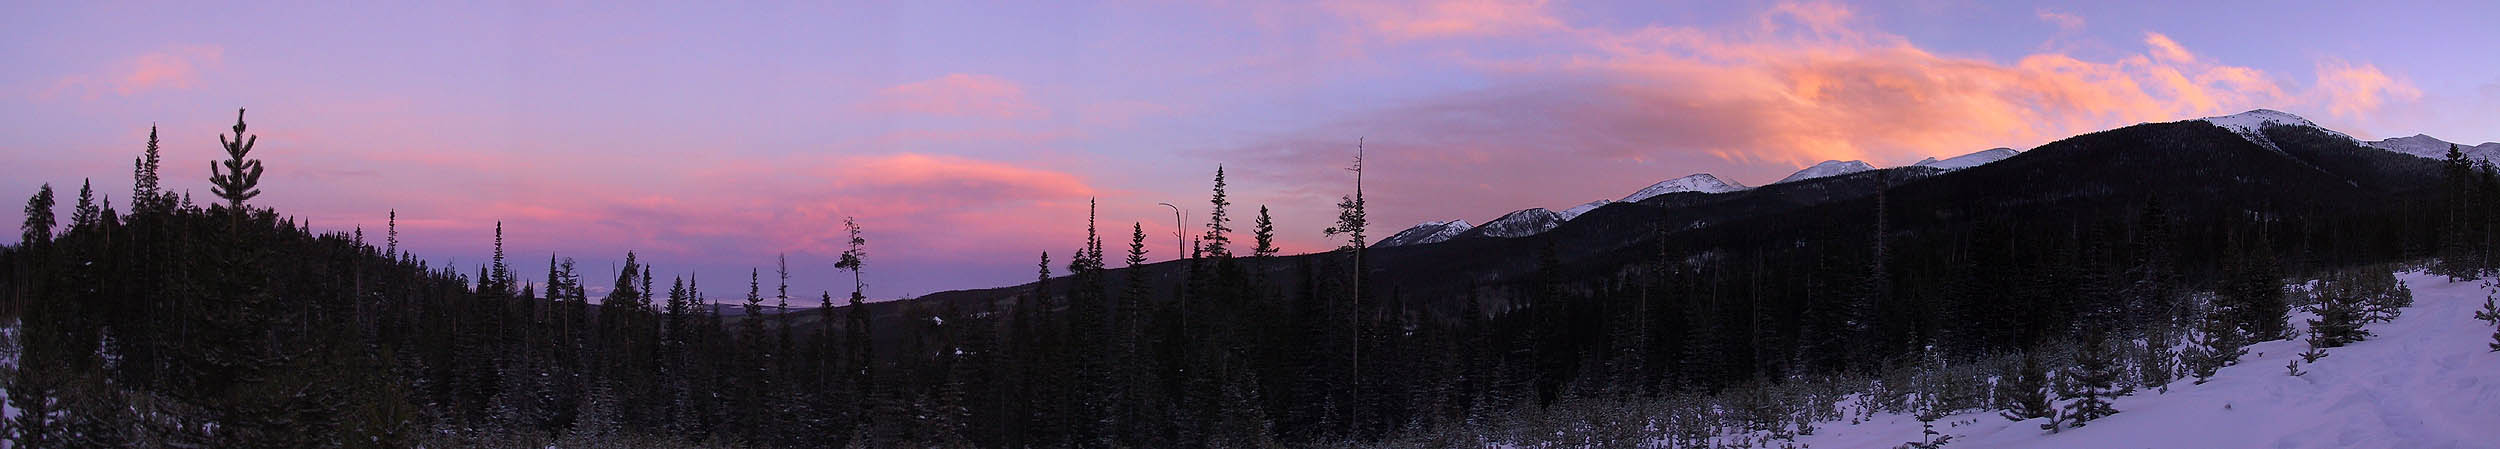 Yurt Trip 2002: Sunrise Panoramic 02